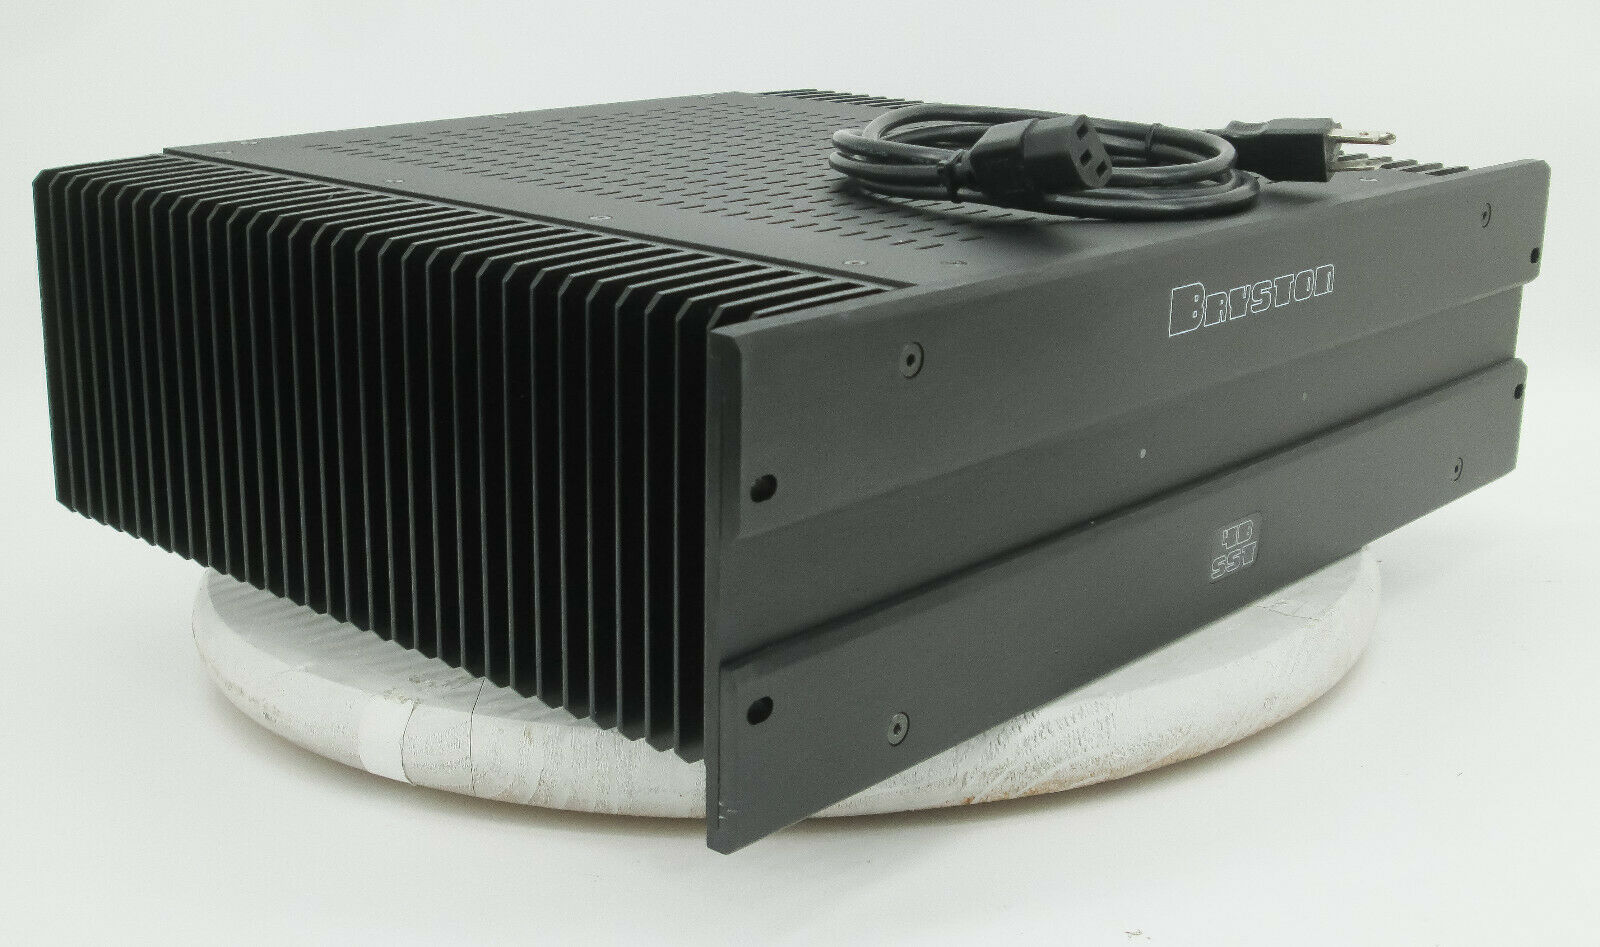 Rack Mount Bryston 4B SST Pro Power Amplifier 300W /CH @ 8-OHM. Available Now for 3199.99